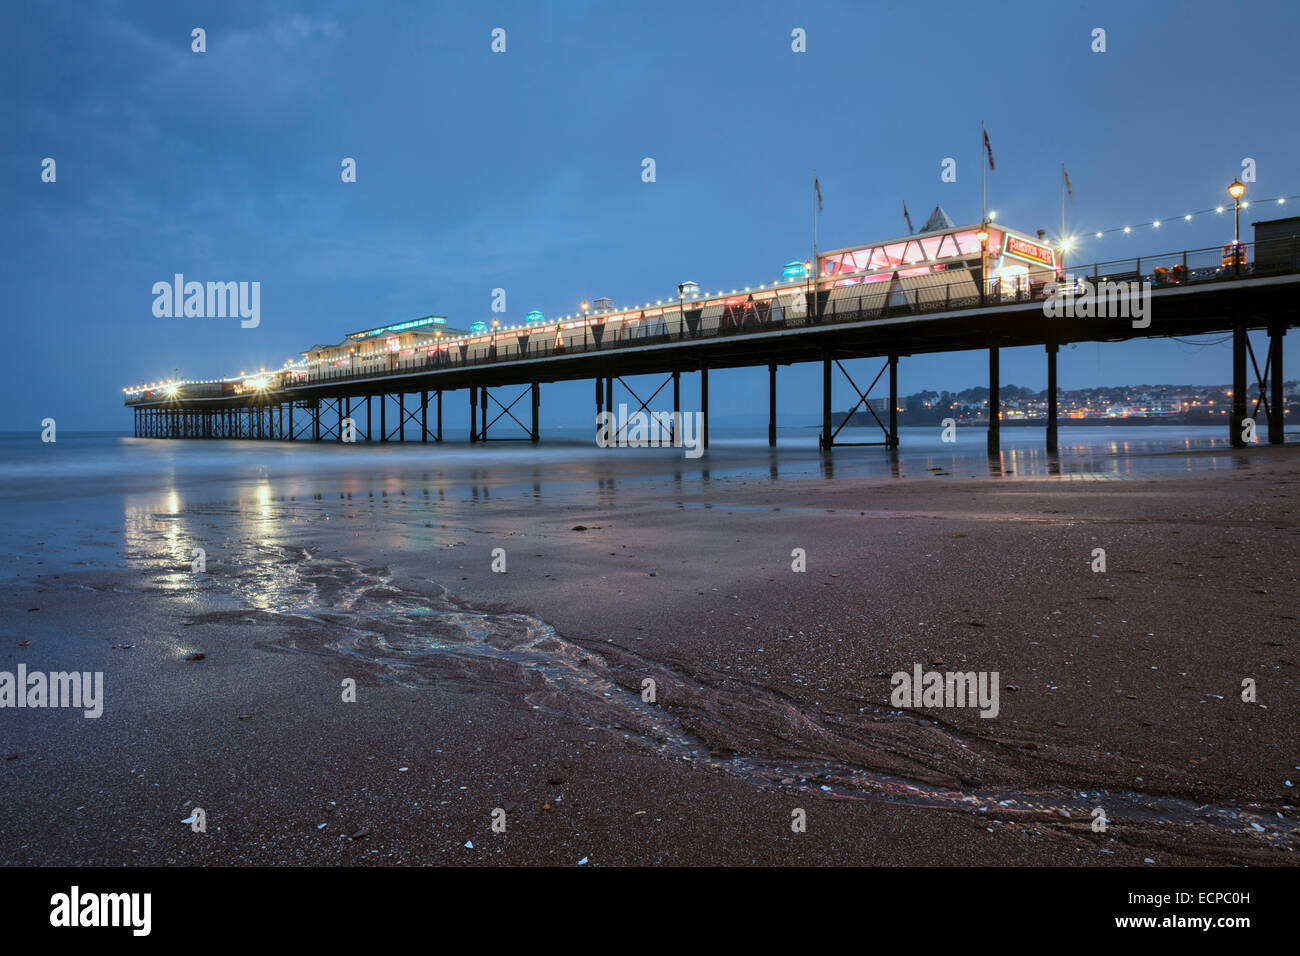 Paignton Pier captured during twilight. - Stock Image